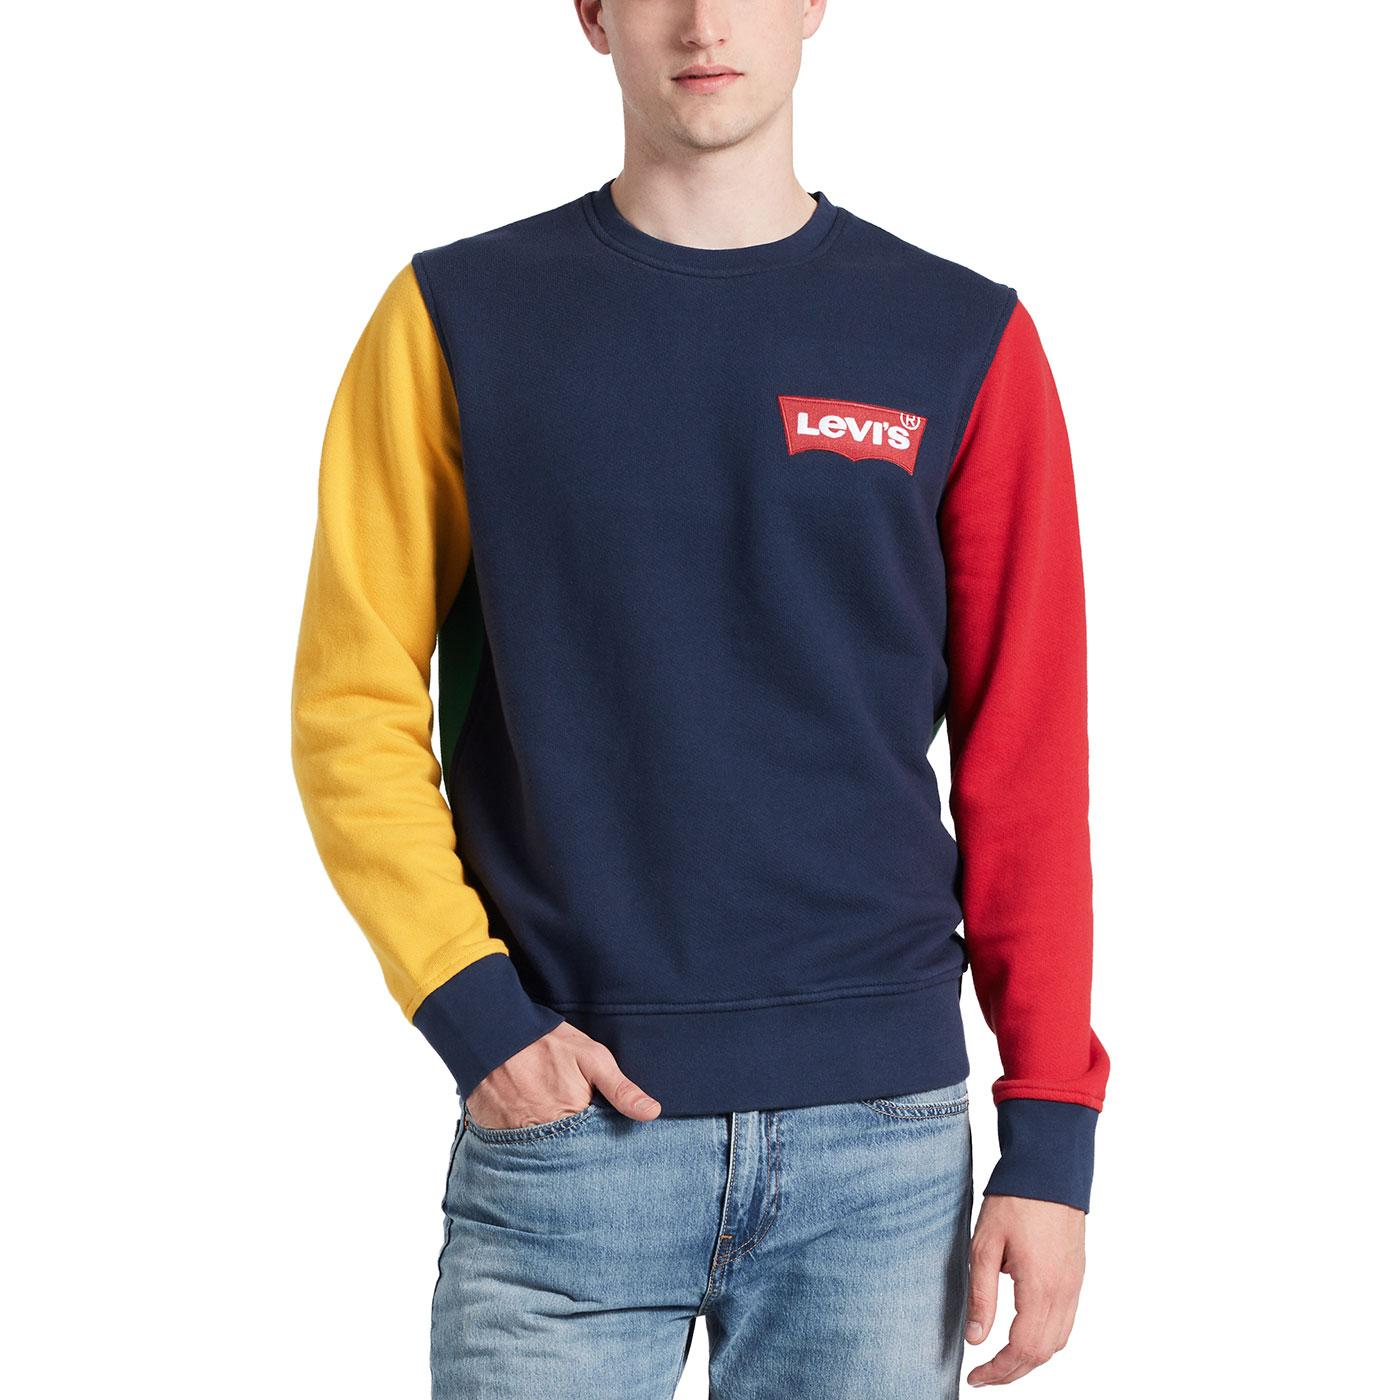 LEVI'S Men's Retro HM Crew Neck Sweatshirt (Navy)